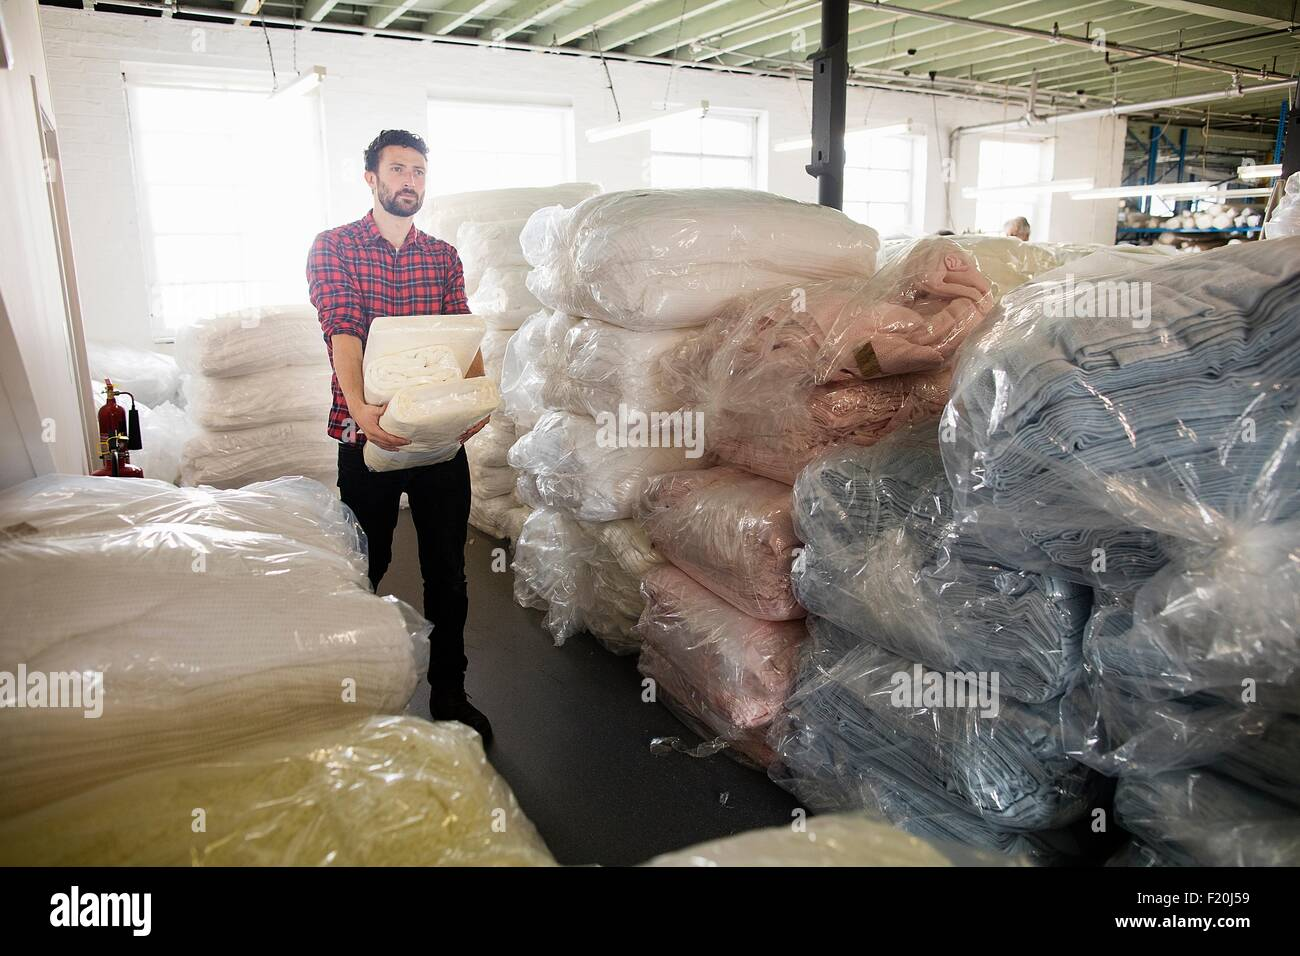 Male weaver carrying orders in textile mill stockroom - Stock Image